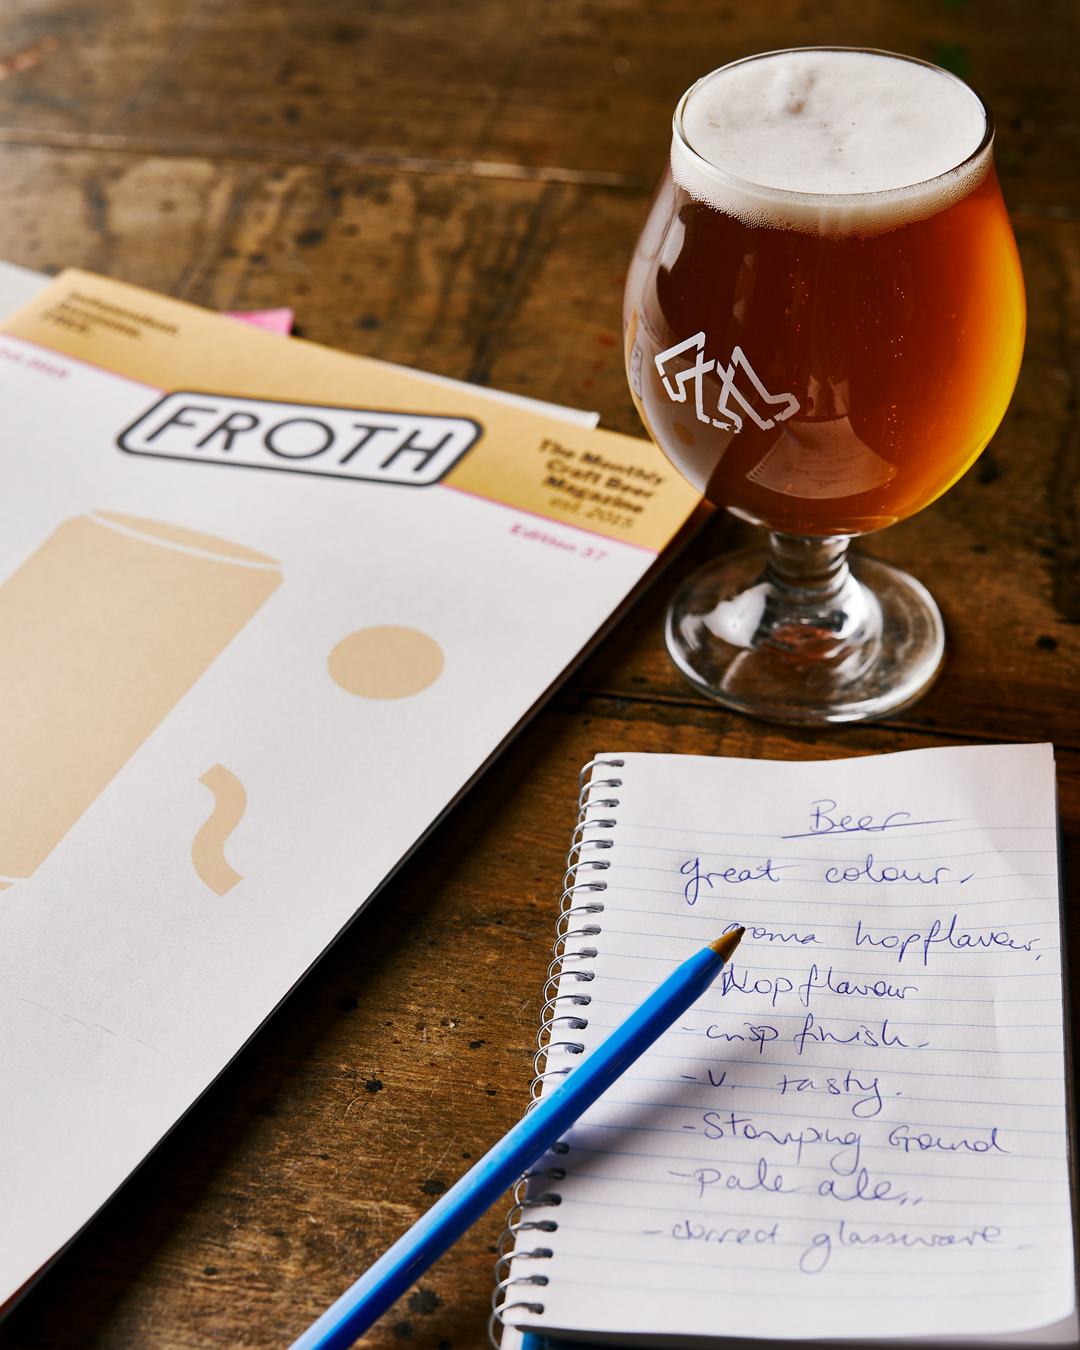 froth beer magazine